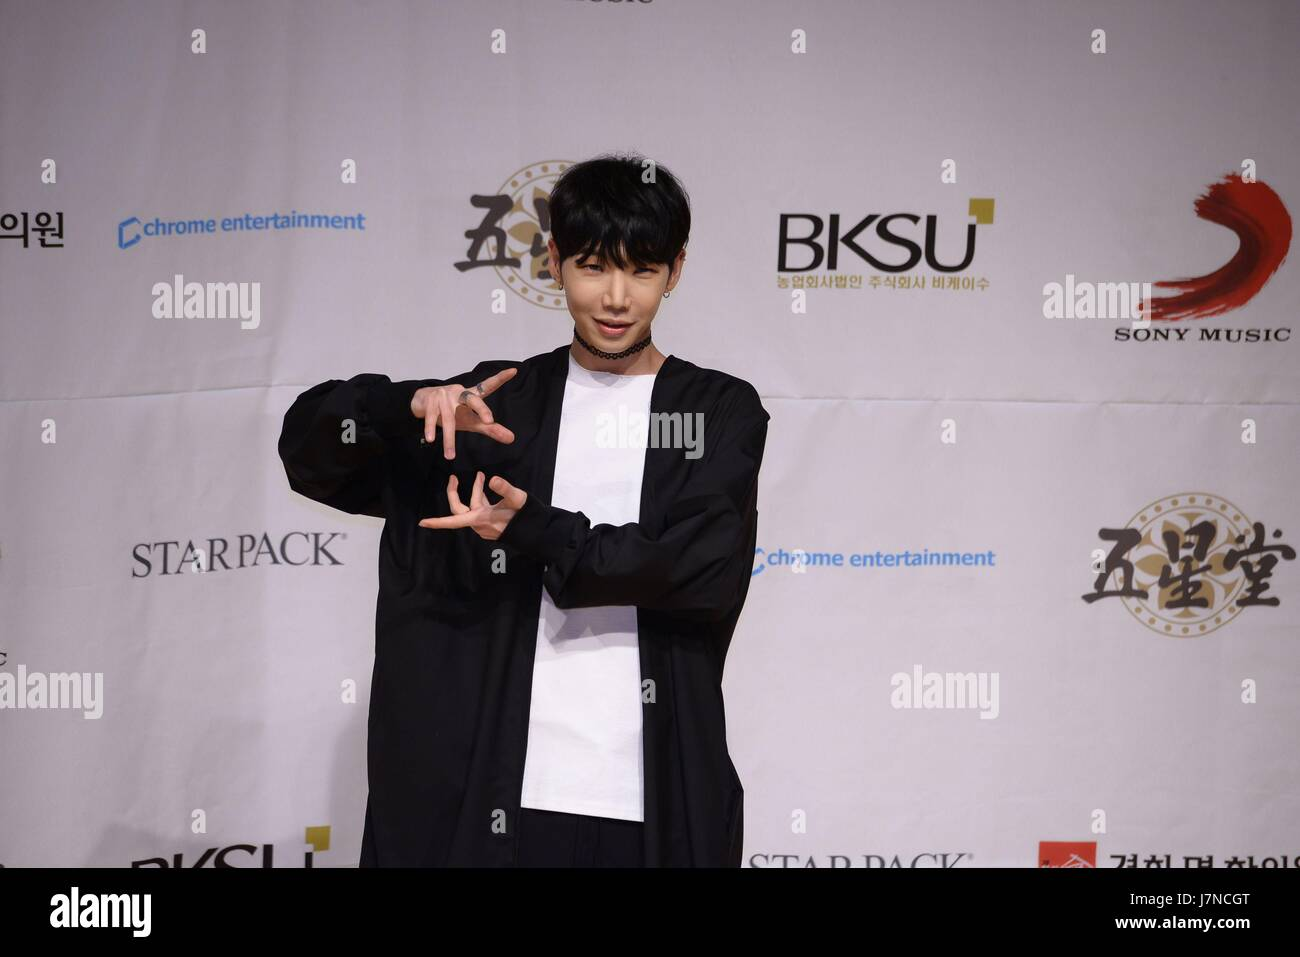 Seoul, Korea. 25th May, 2017. Be.A hold showcase to promote their single Magical Realism in Seoul, Korea on 25th - Stock Image